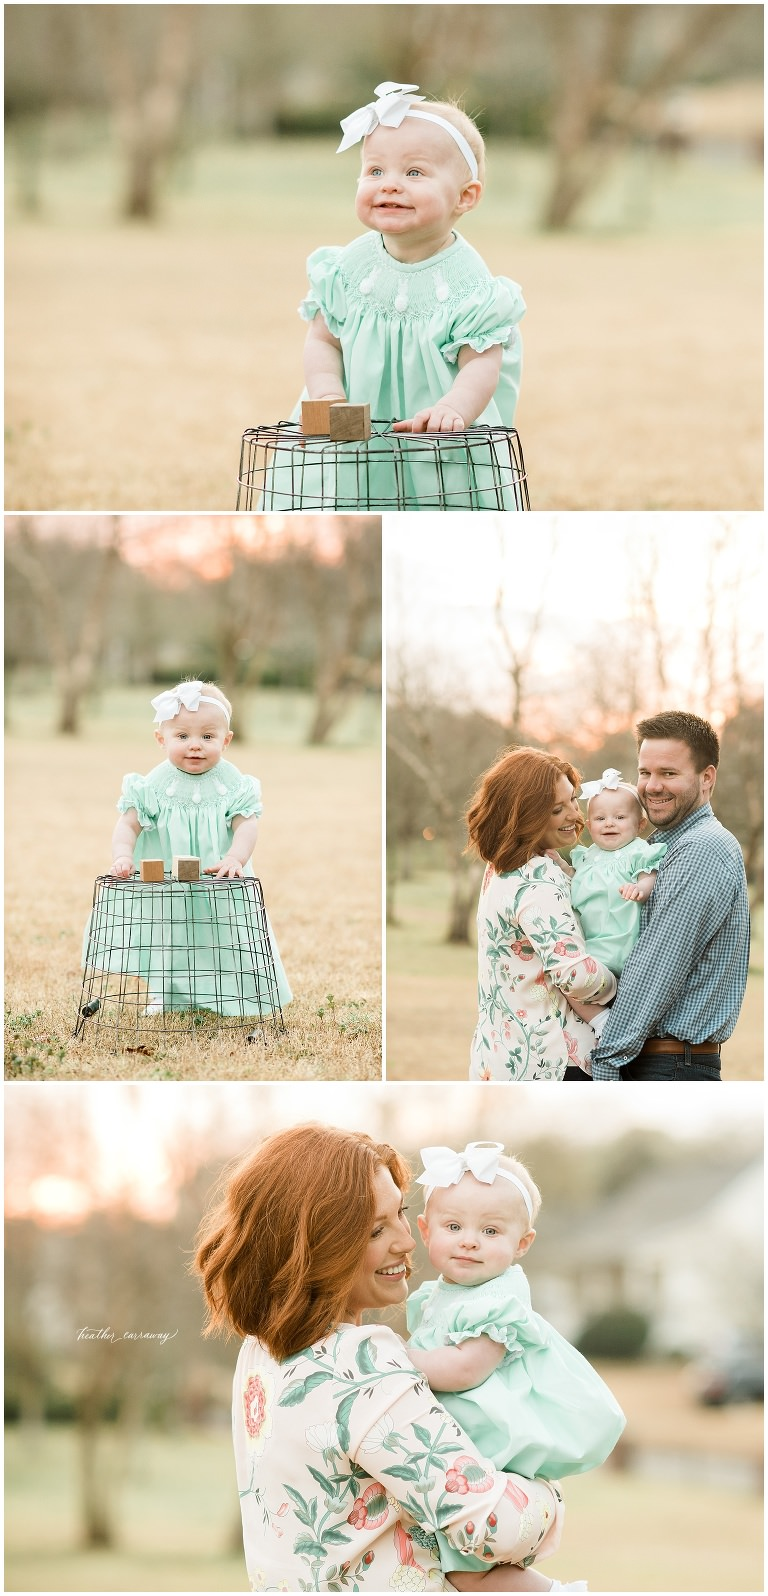 Sunrise Session | Spring Family Session | Atlanta Baby & Family Photographer